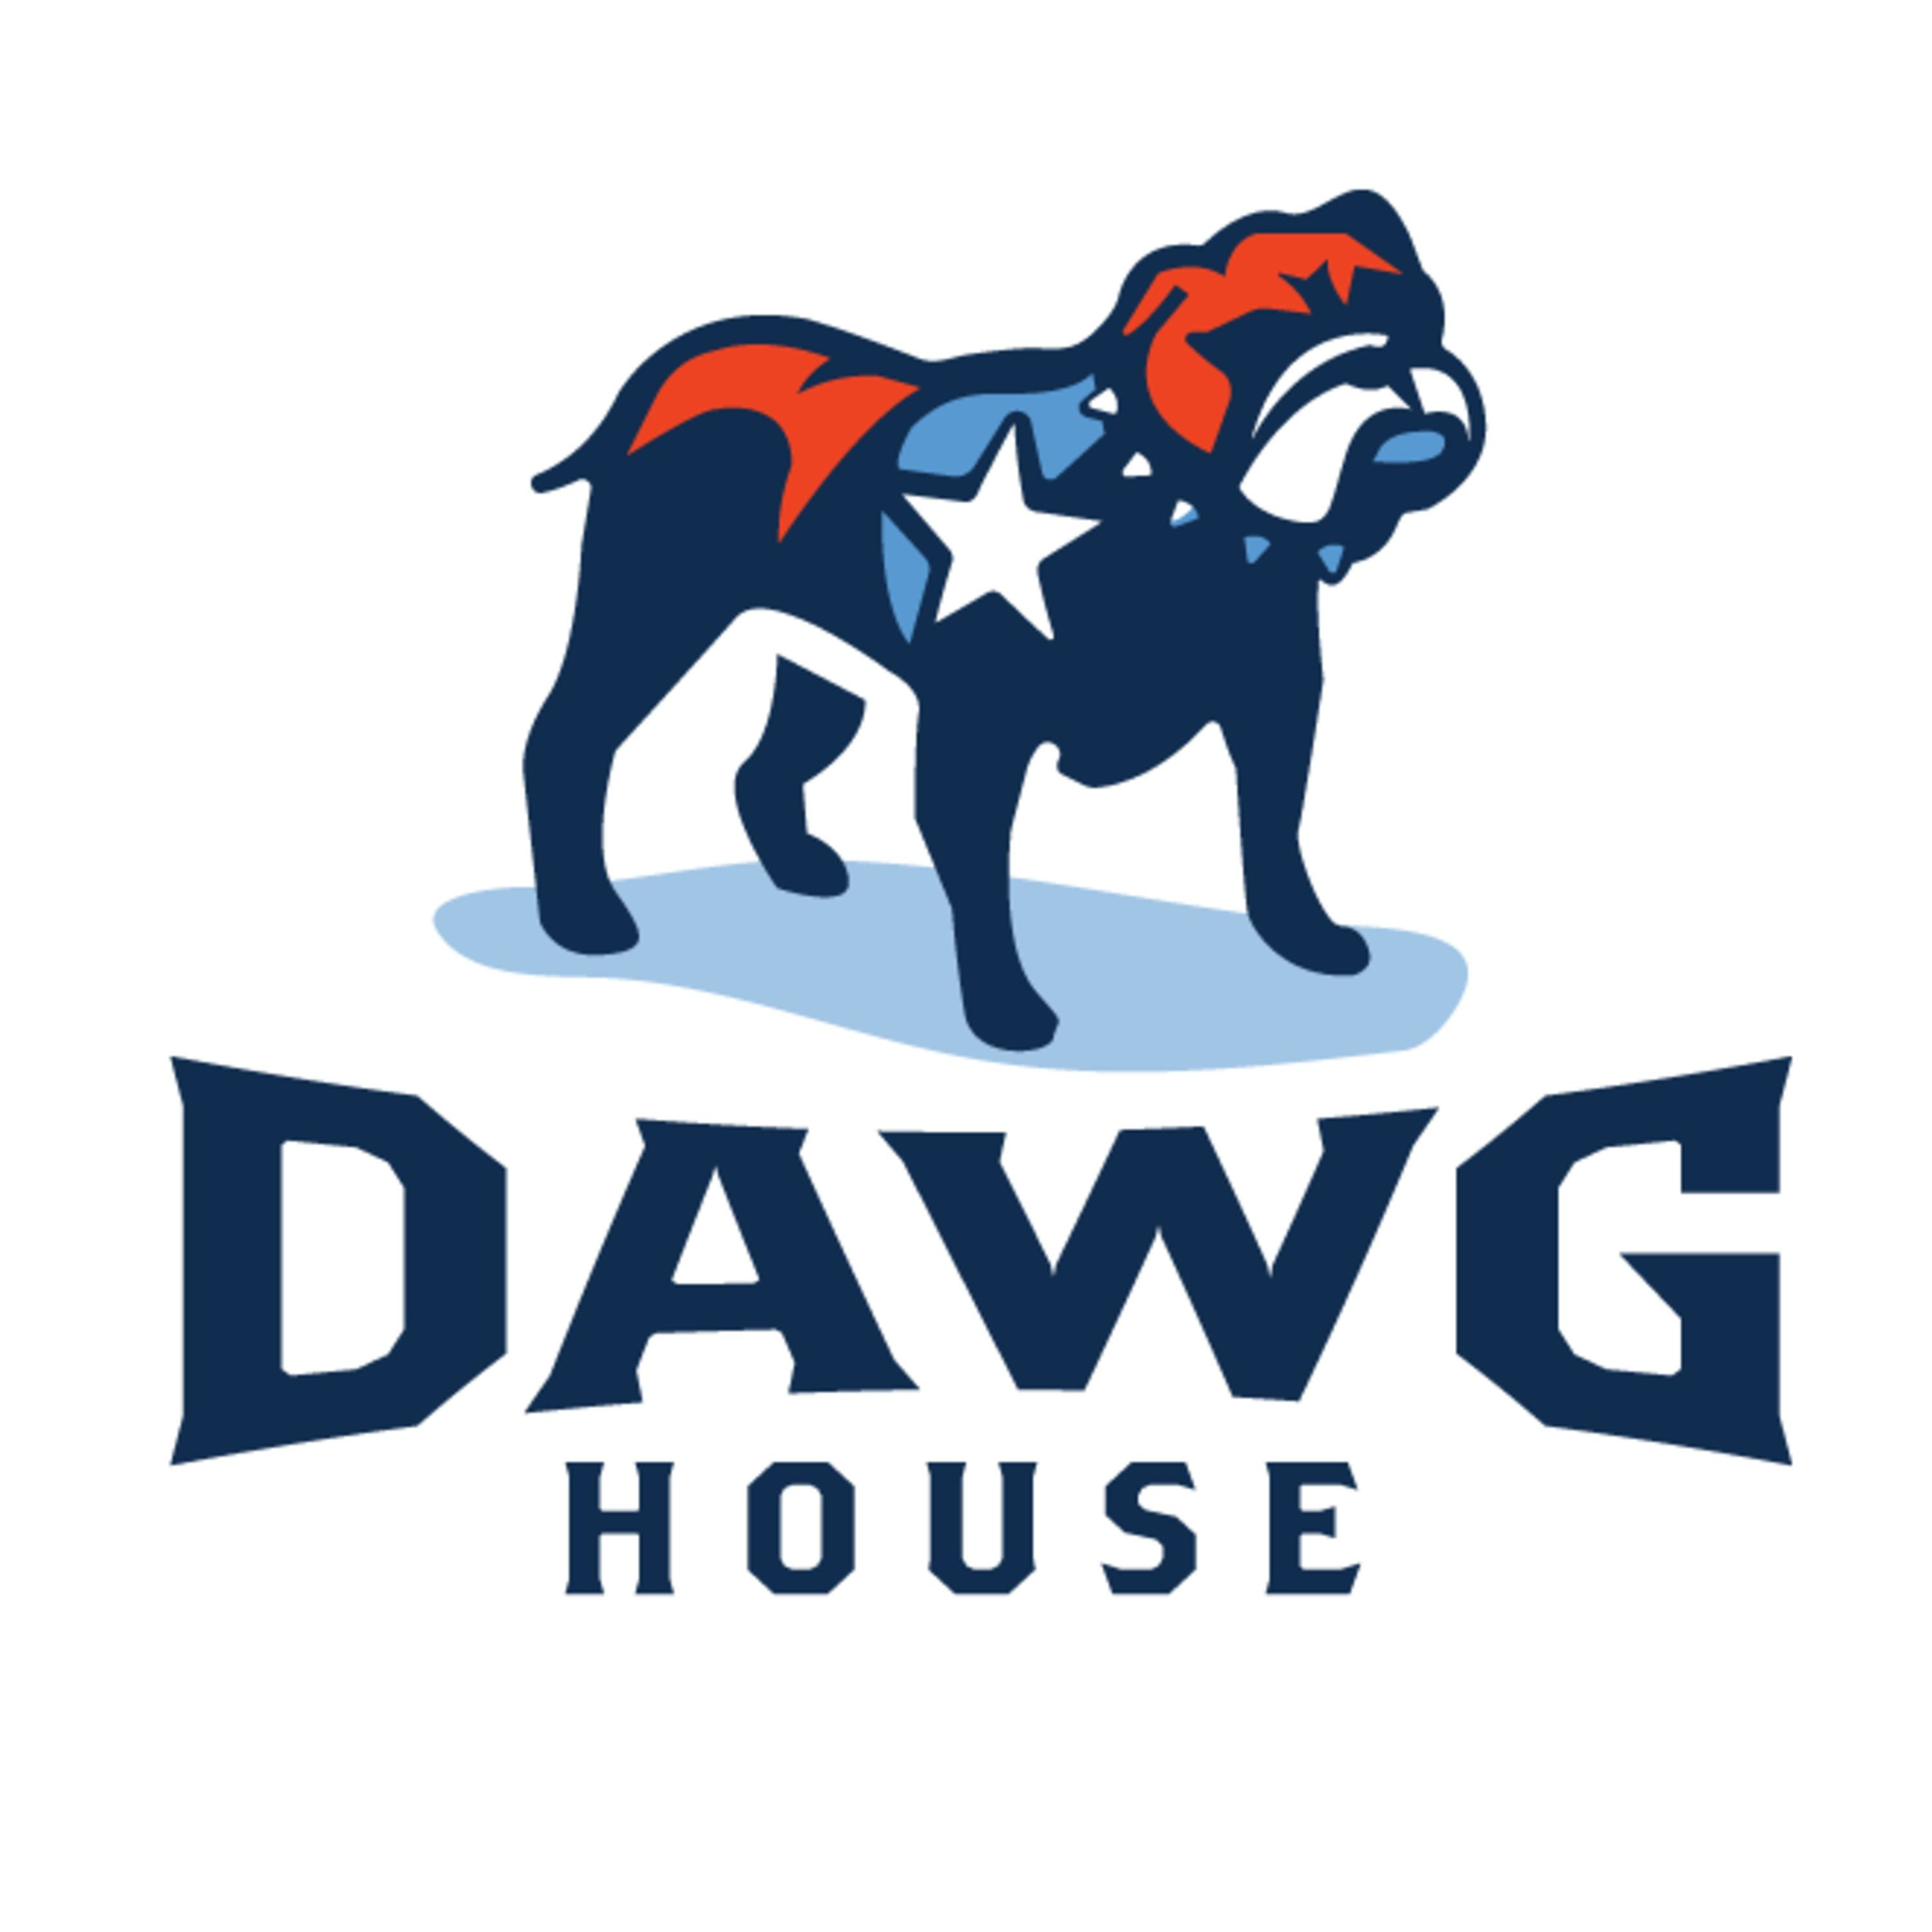 In The Dawg House Episode 2